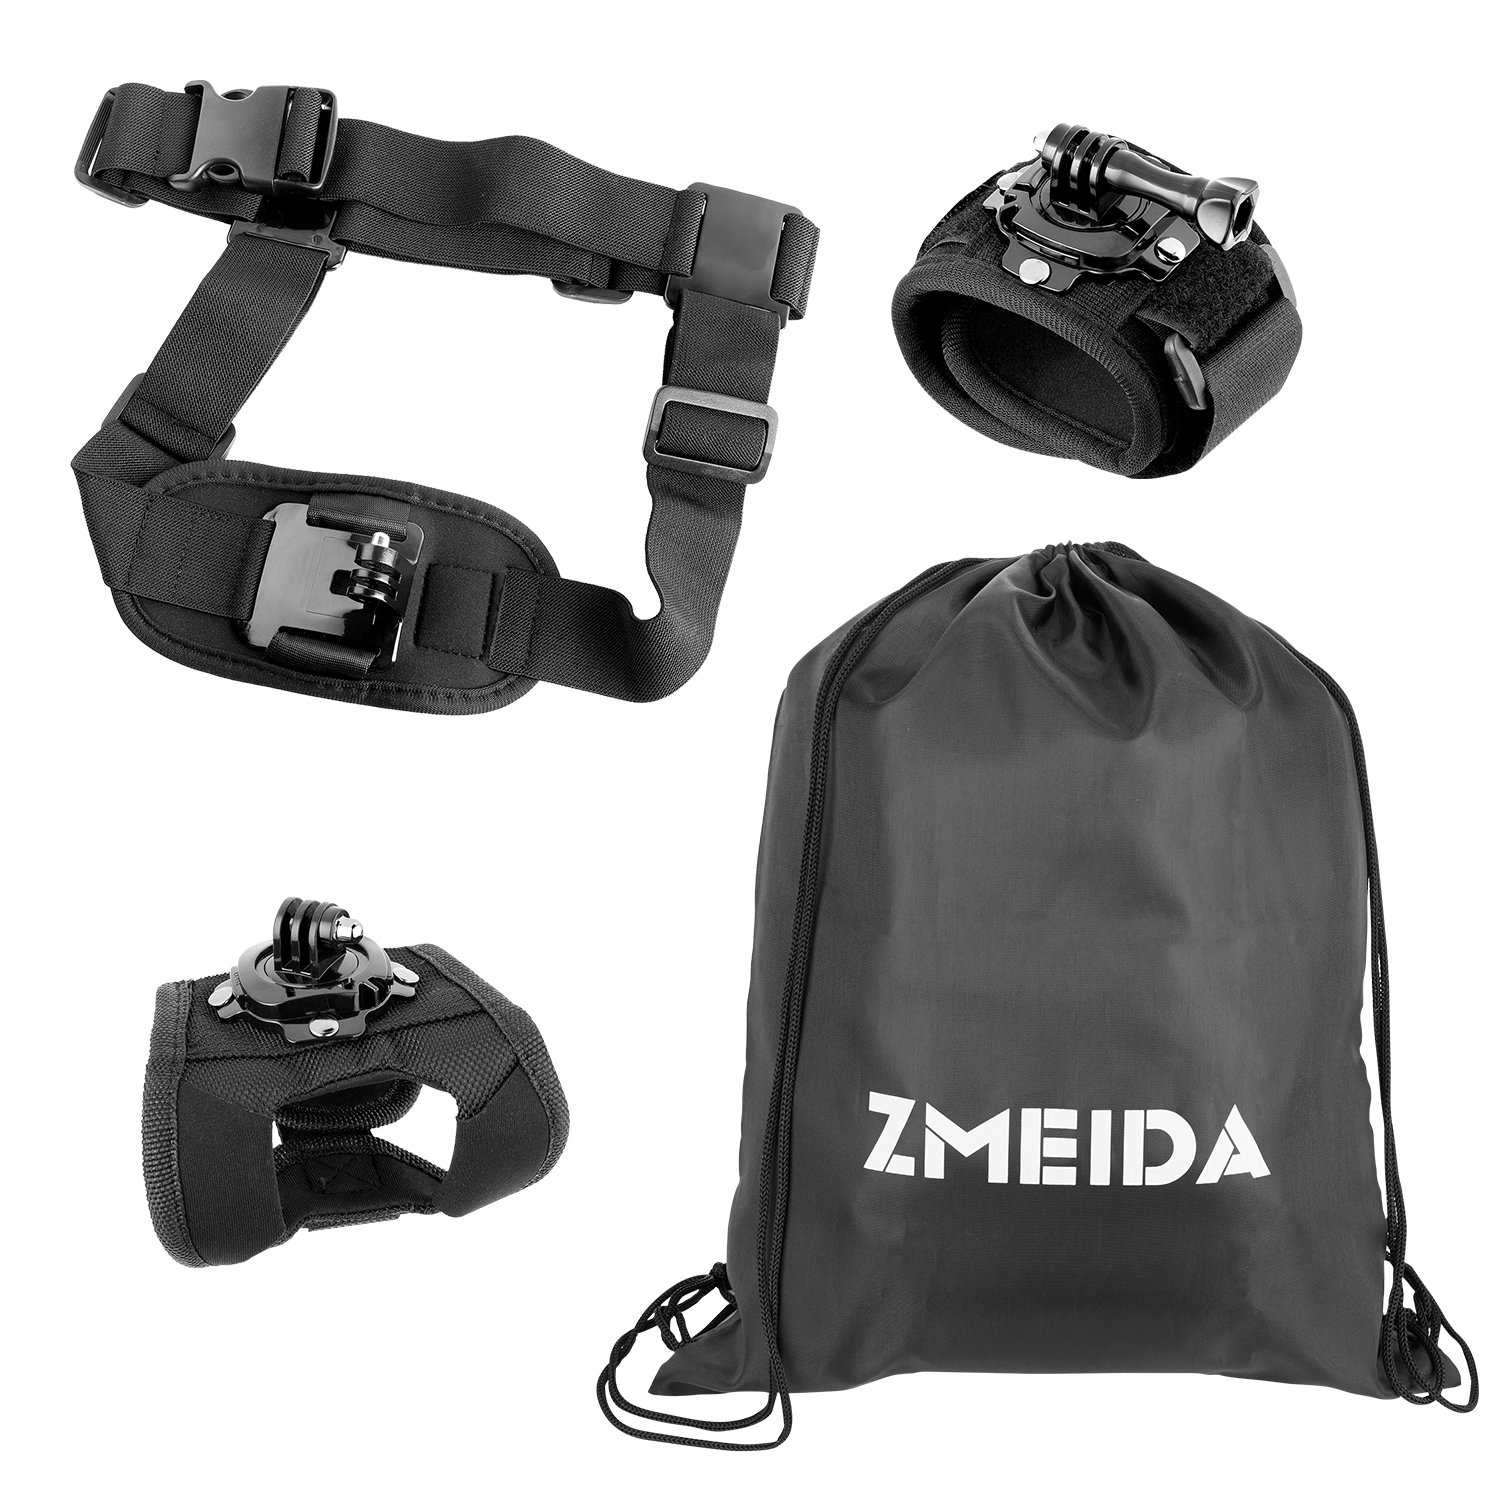 Zmeida Accessory Kit for GoPro HERO3+, GoPro HERO3, GoPro HERO2 and GoPro HERO Cameras